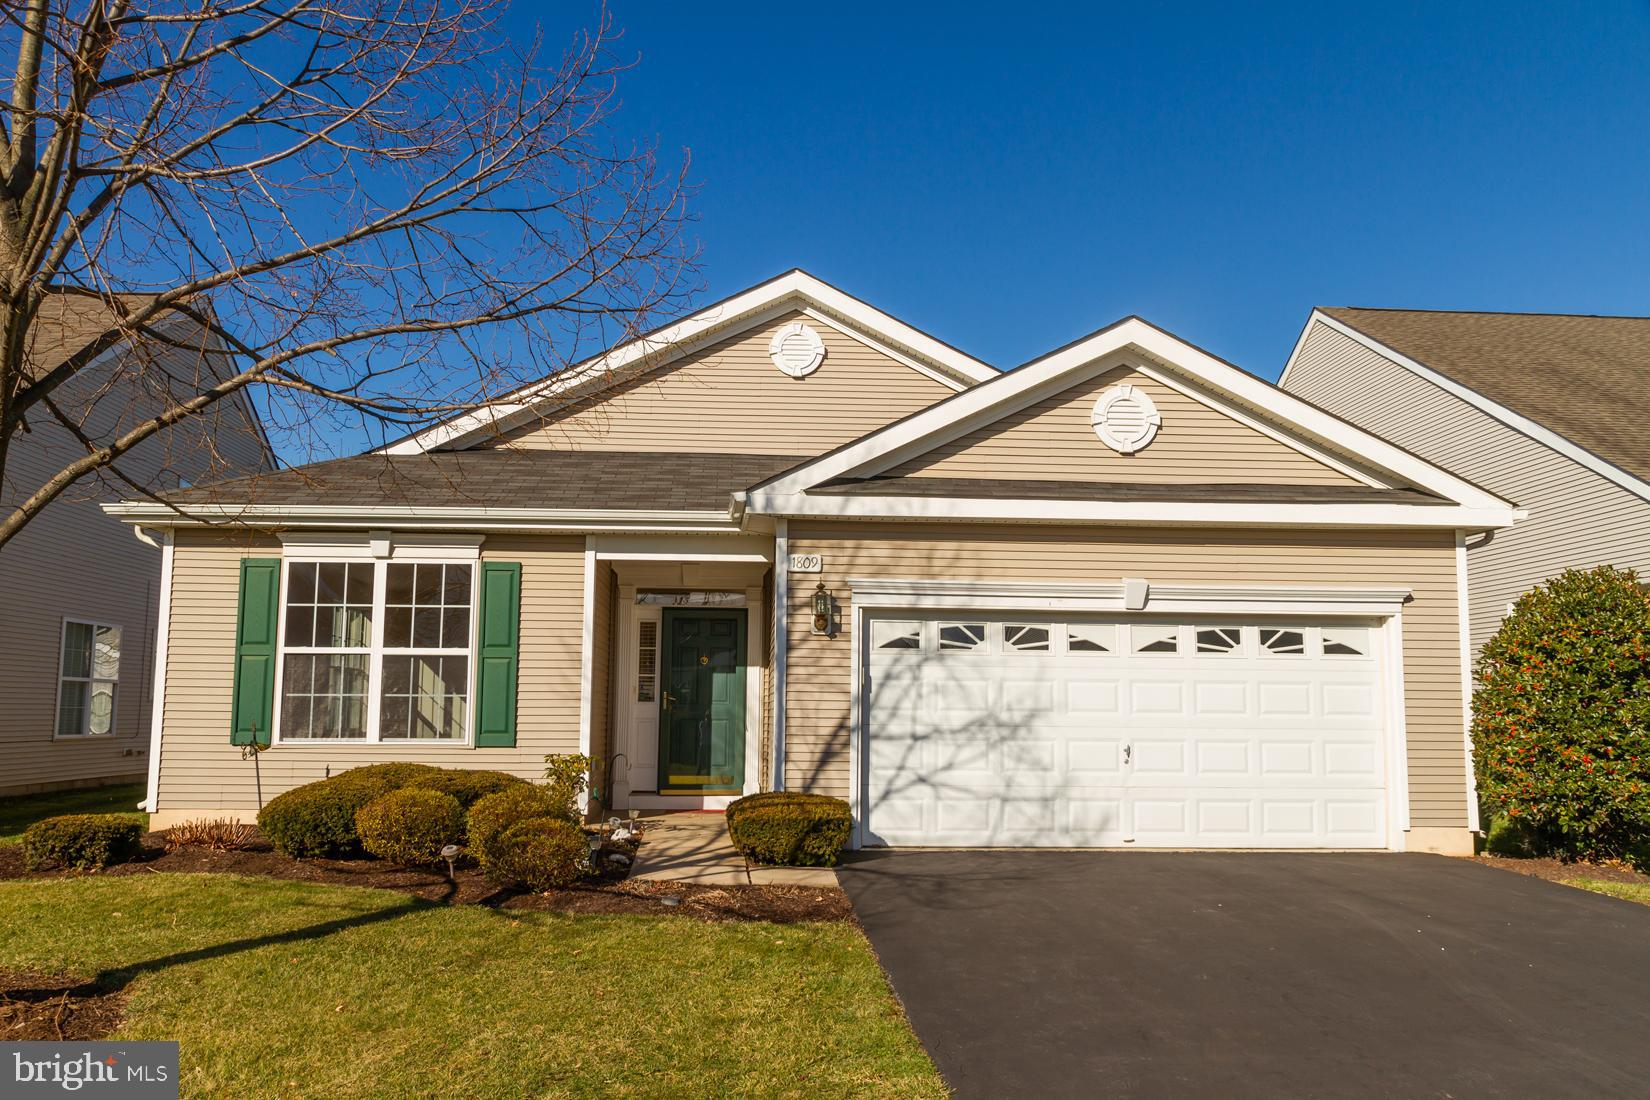 1809 ALEXANDER DRIVE, MACUNGIE, PA 18062